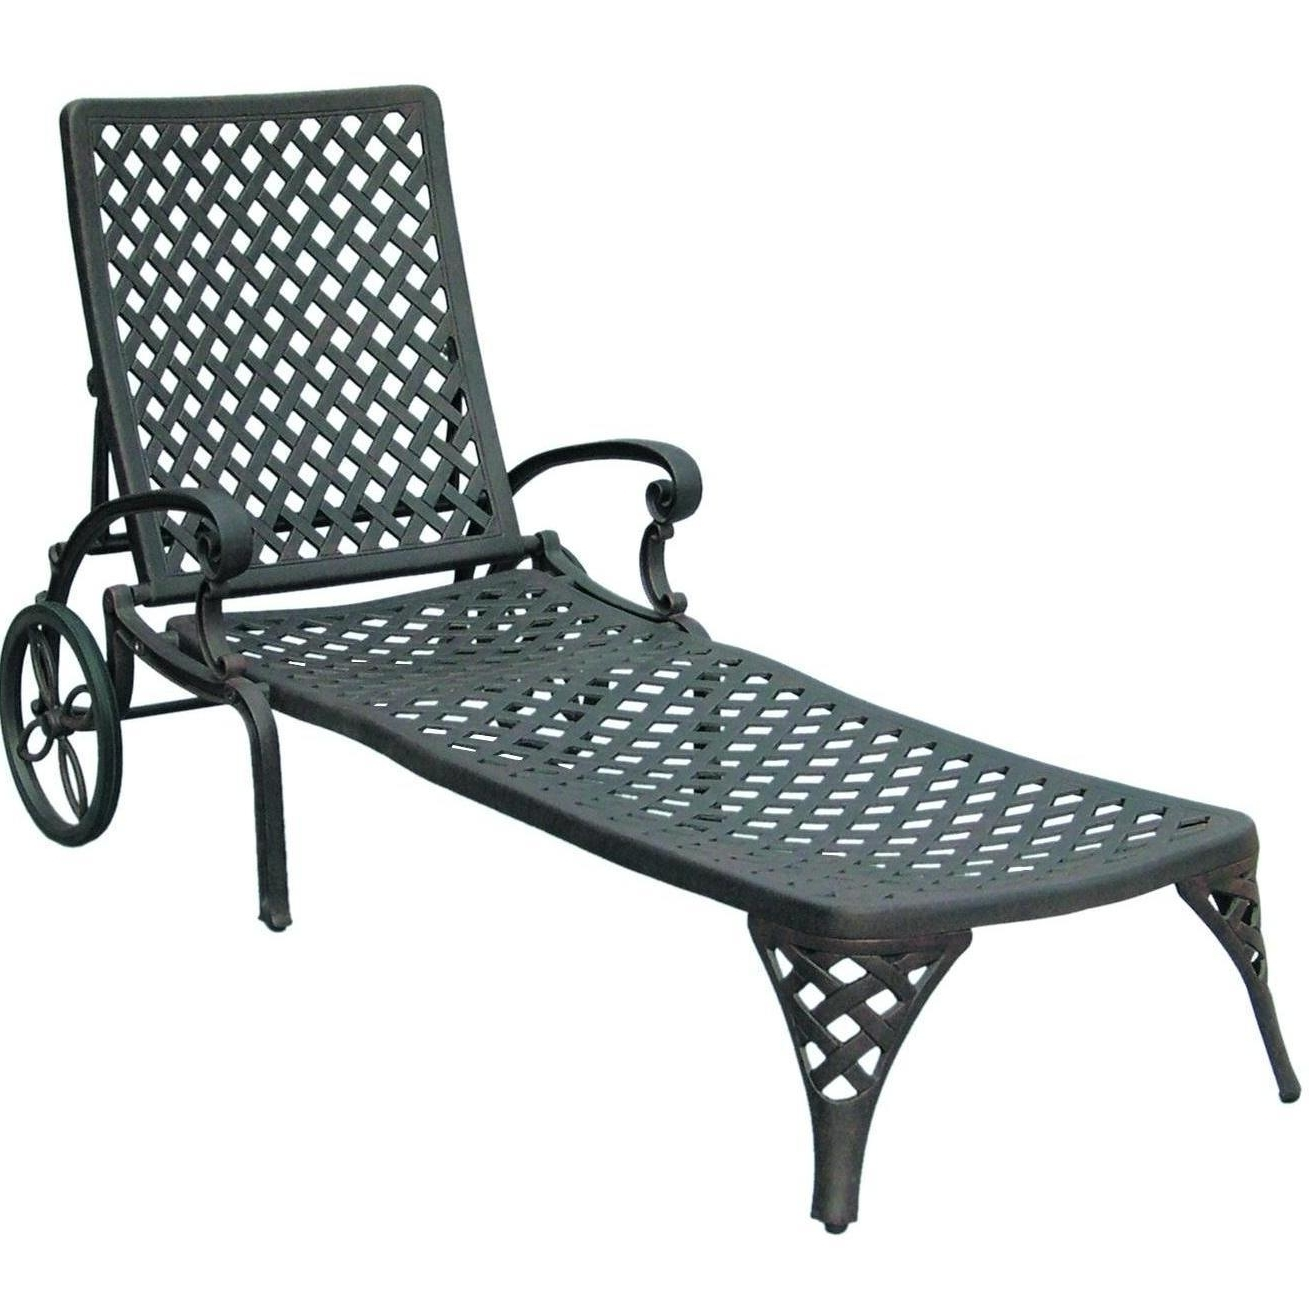 Widely Used Wrought Iron Chaise Lounges Within Darlee Nassau Cast Aluminum Patio Chaise Lounge : Ultimate Patio (View 7 of 15)